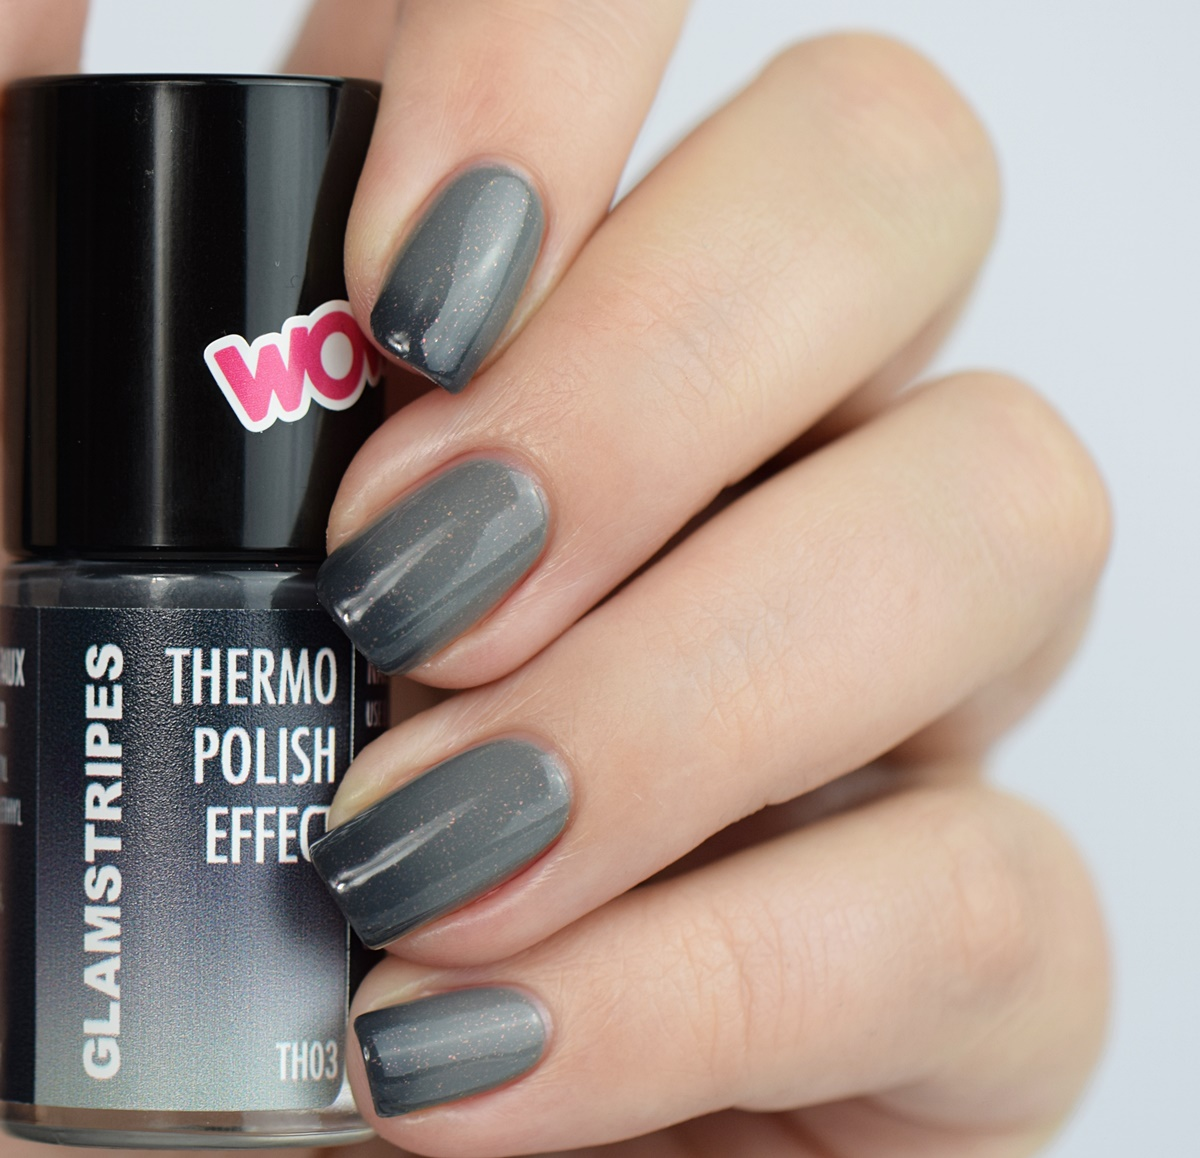 glamstripes-thermo-polish-effect-th03-black-to-grey